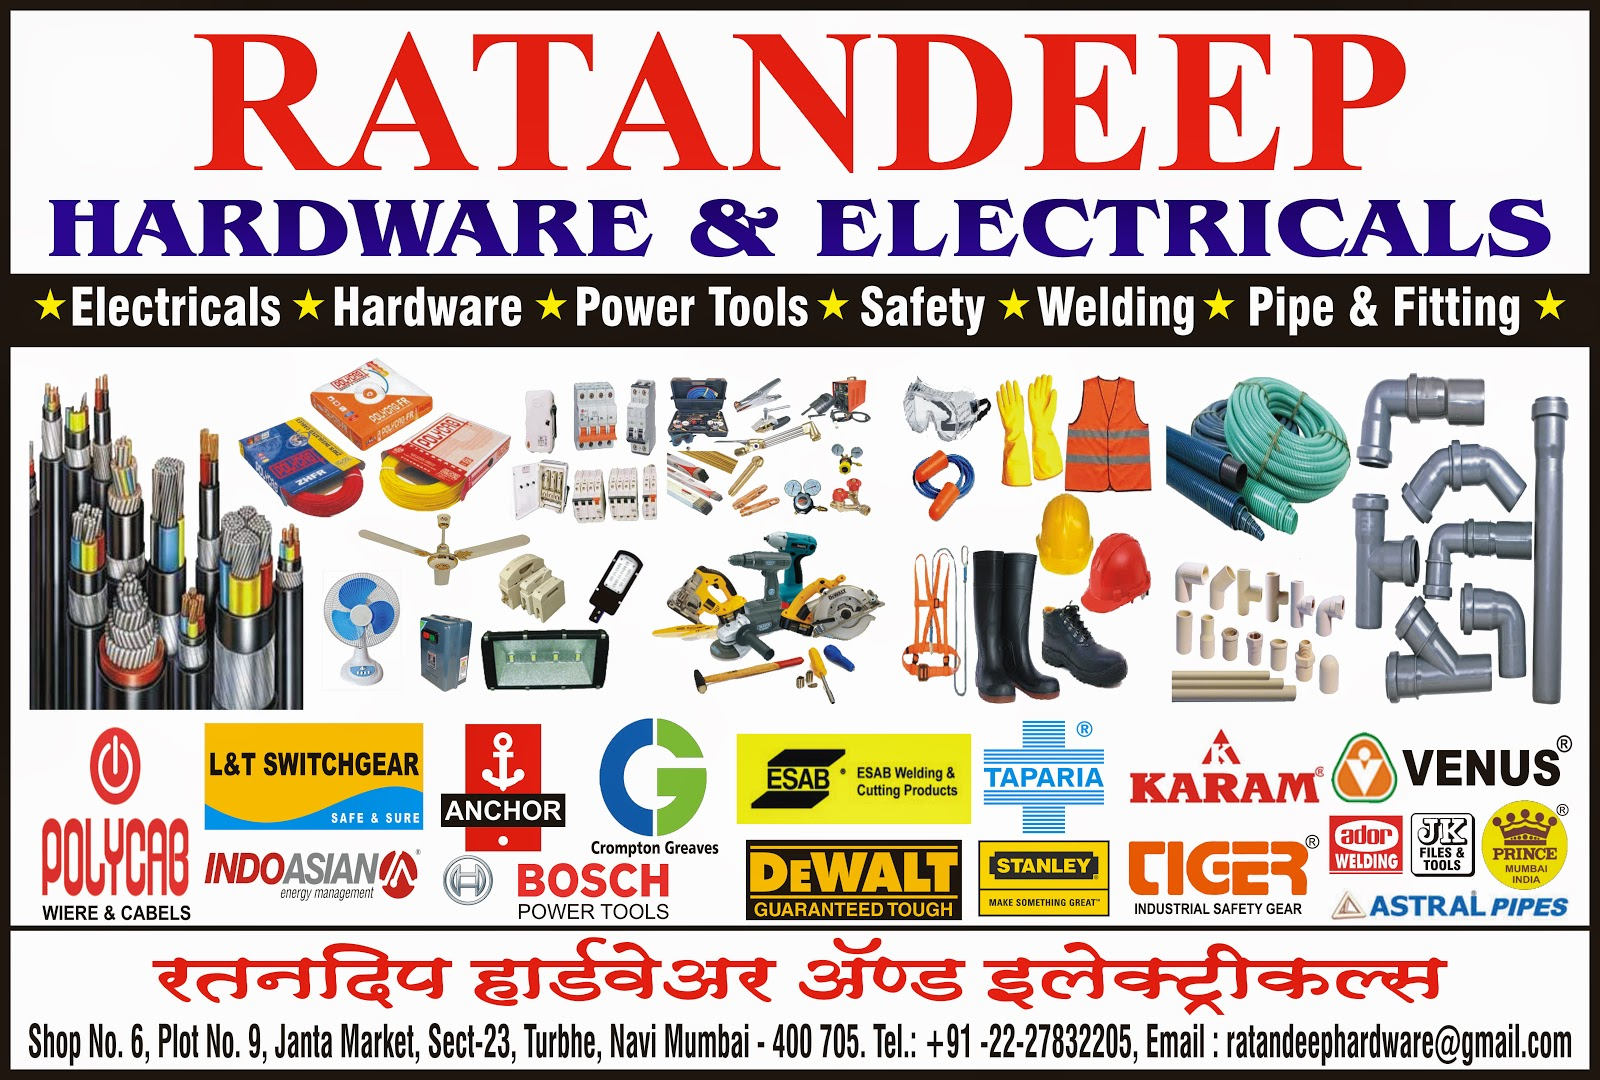 ratandeep hardware electricals rh www ratandeephardware blogspot com electrical safety electrical supply stores near me